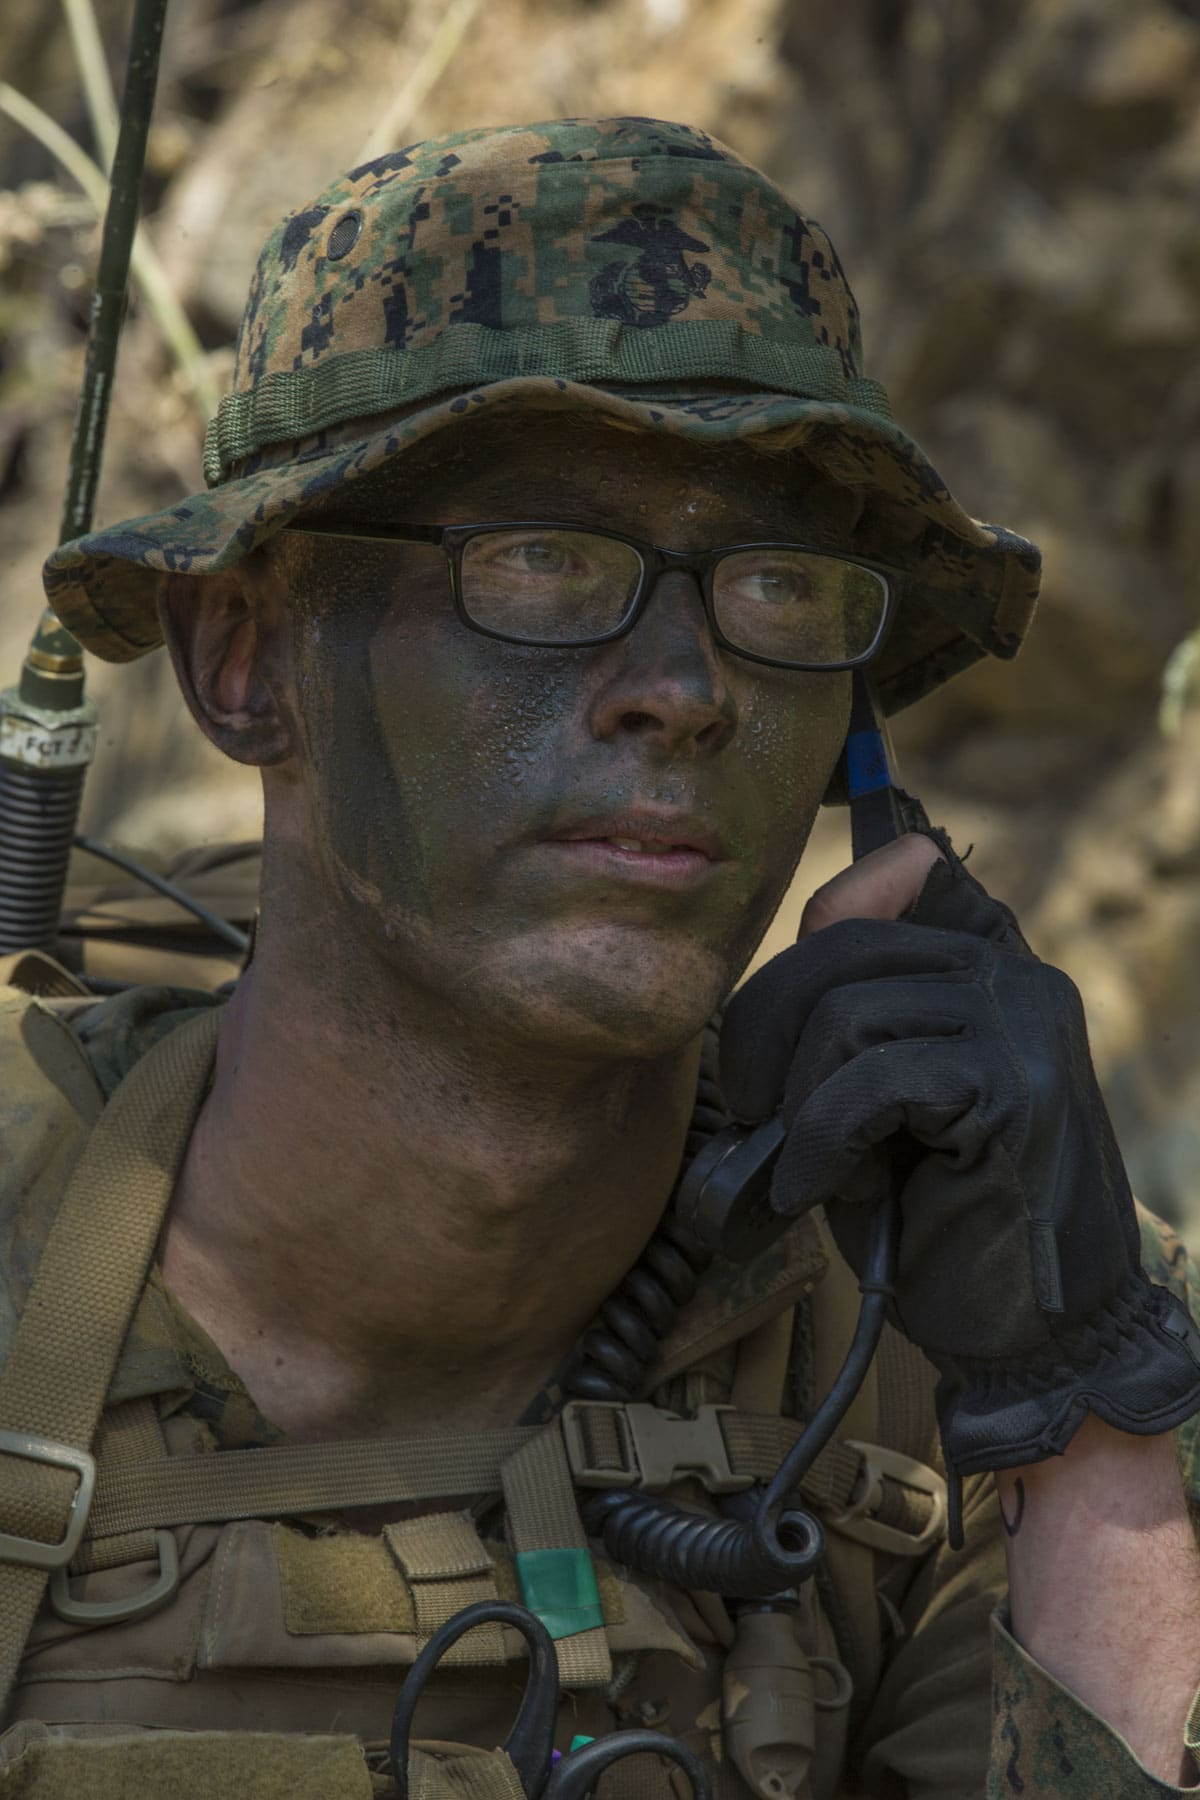 Marine Corps Lance Cpl. Michael Bruce, a Radio Operator, radio checks with fellow squad members during a simulated reconnaissance mission.